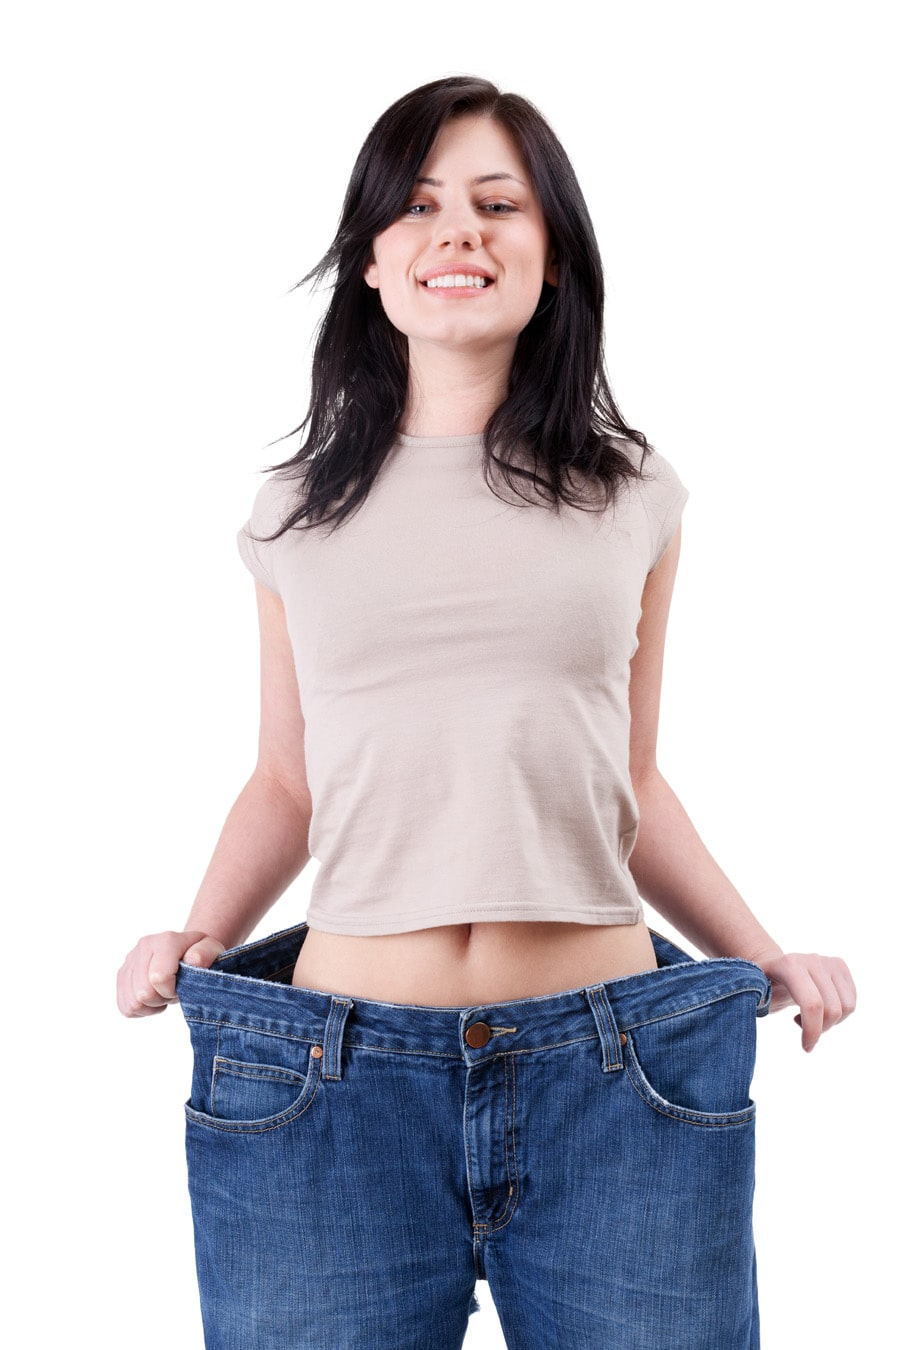 weight loss woman  in too great jeans trousers